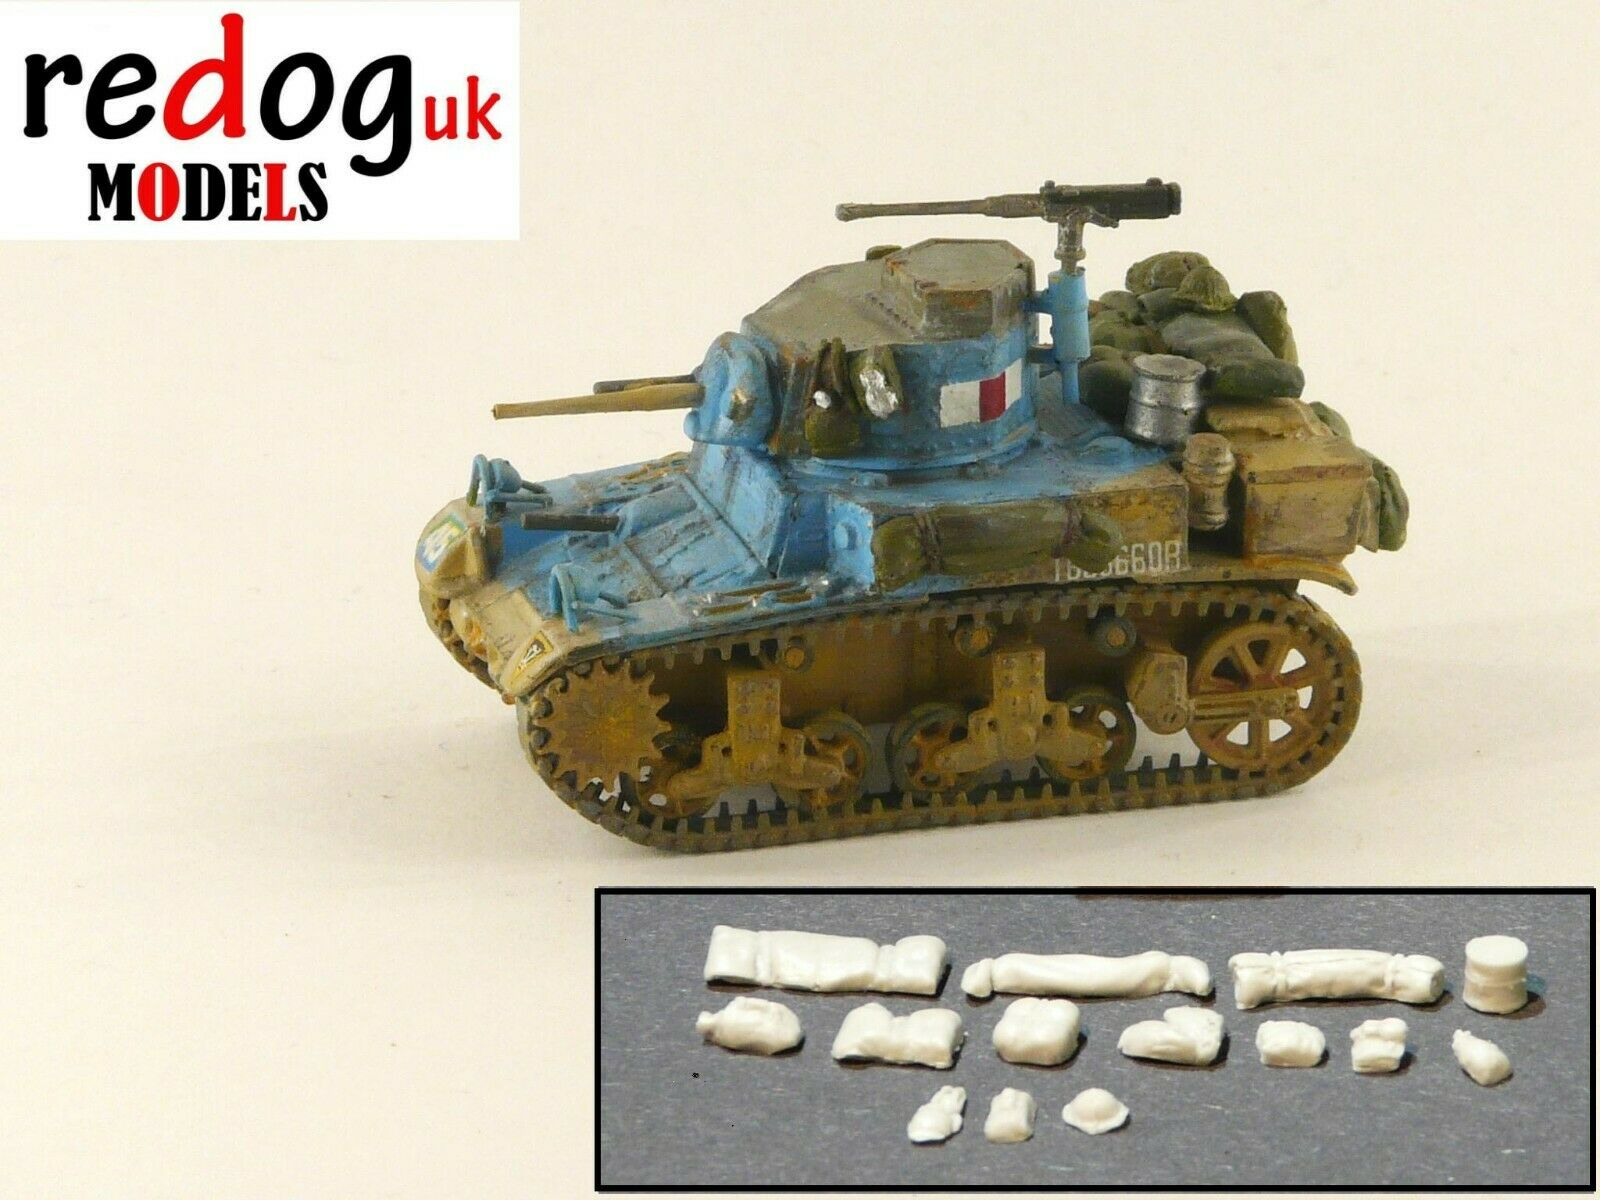 1:72 M3 Stuart Honey Tank Military Scale Model Stowage Kit Accessories - redoguk